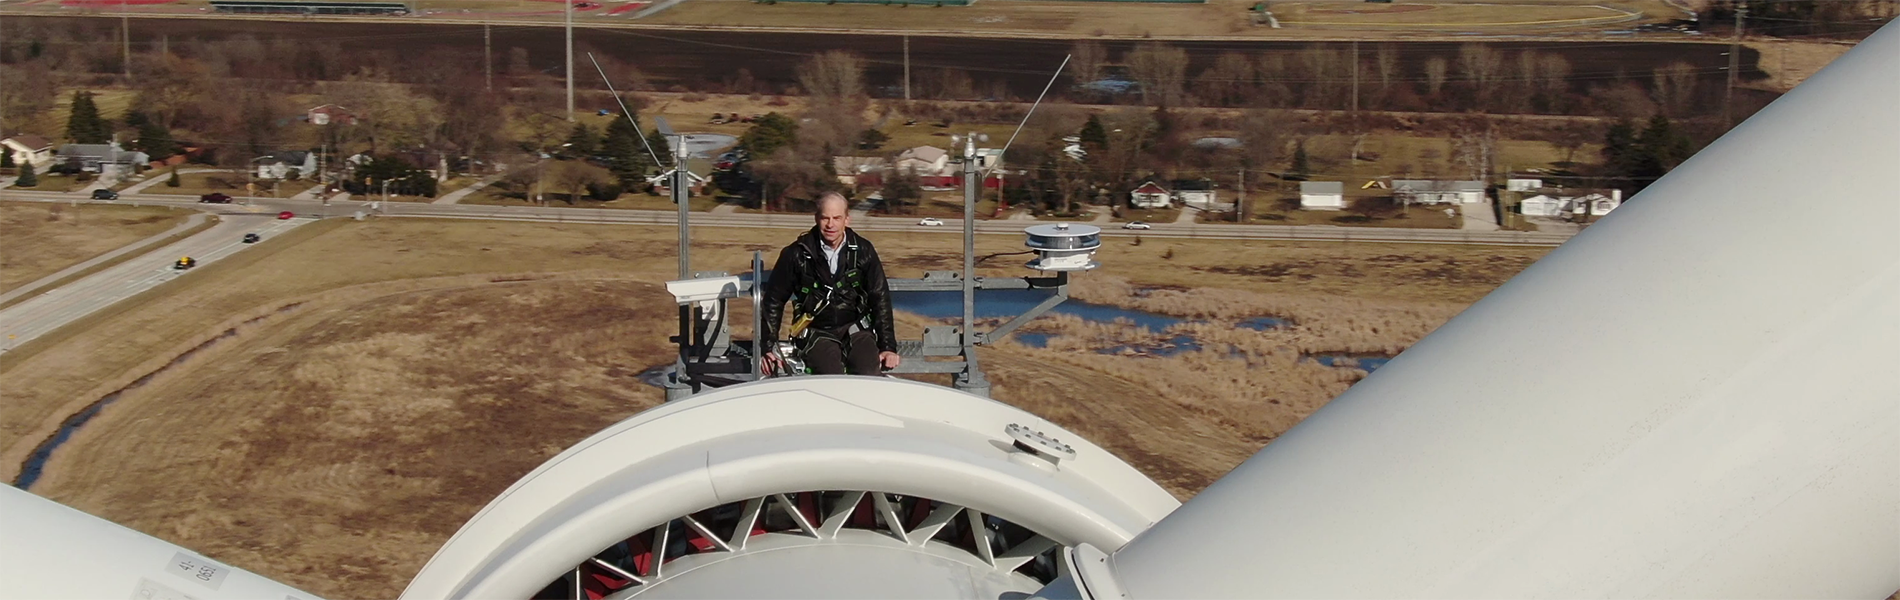 Fisk at the top of a wind turbine